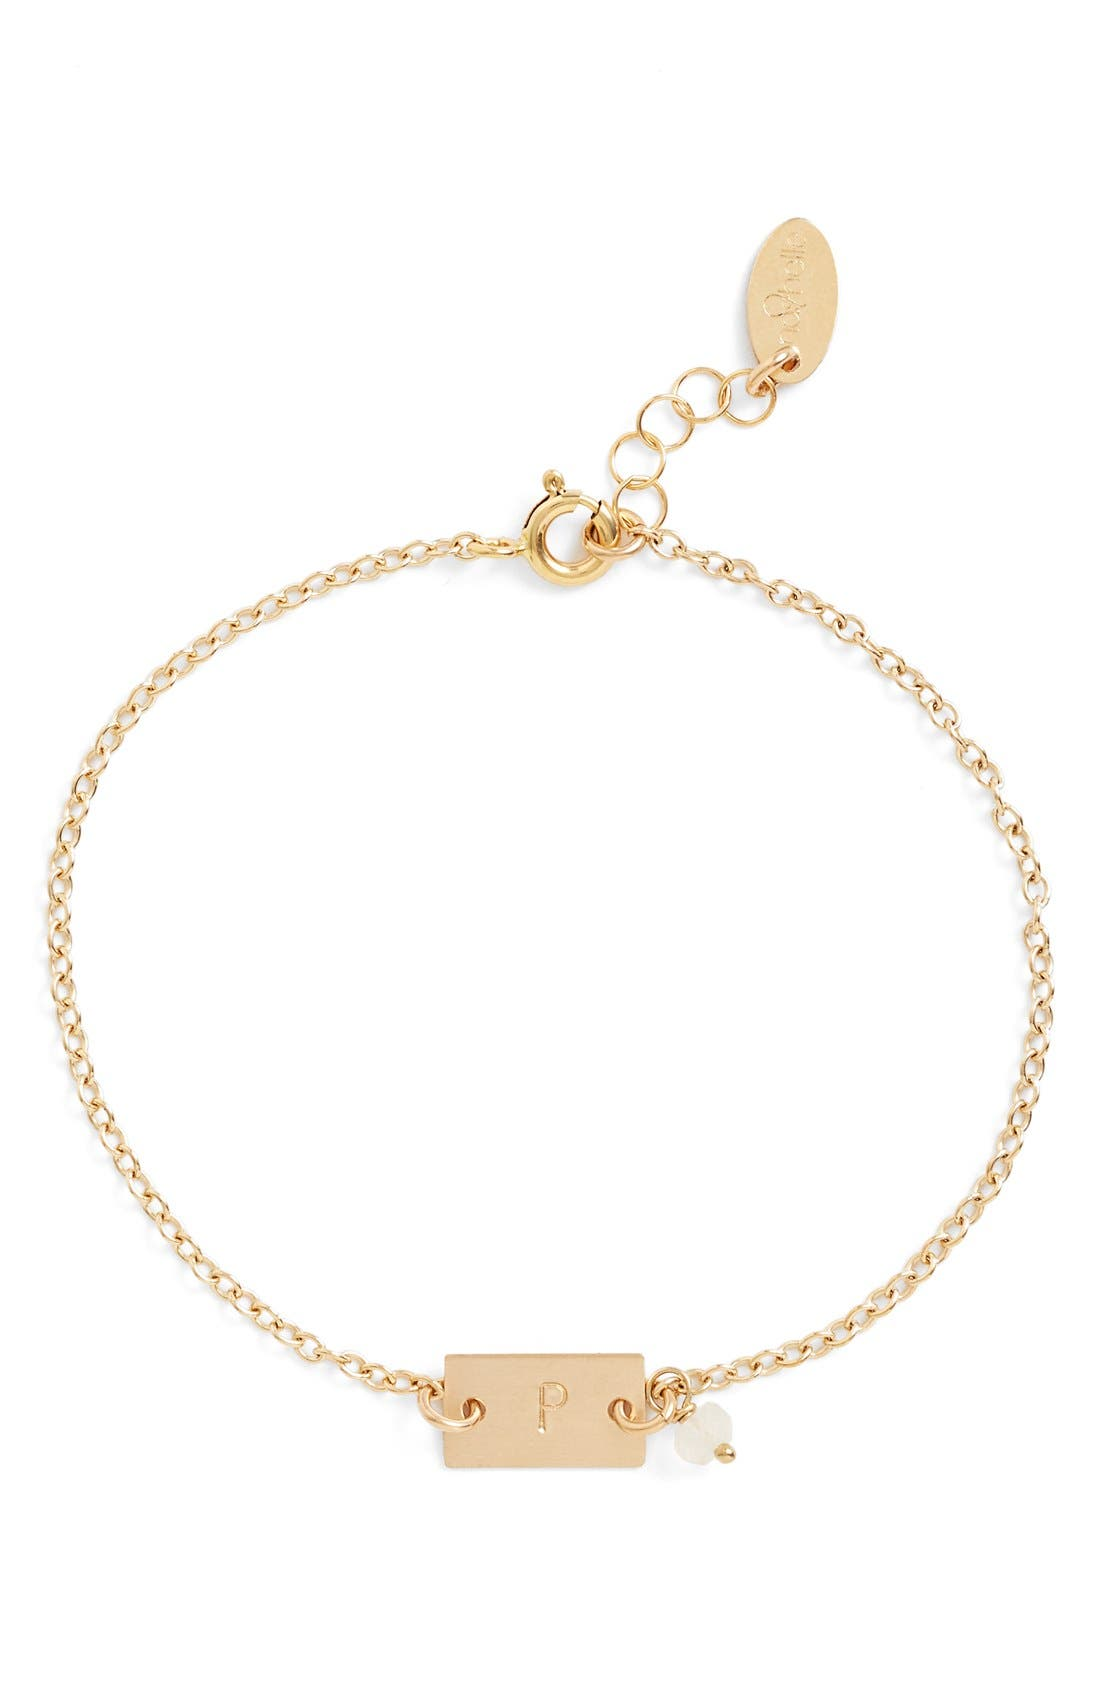 Alternate Image 1 Selected - Nashelle Shaka Initial 14k-Gold Fill Bar Bracelet